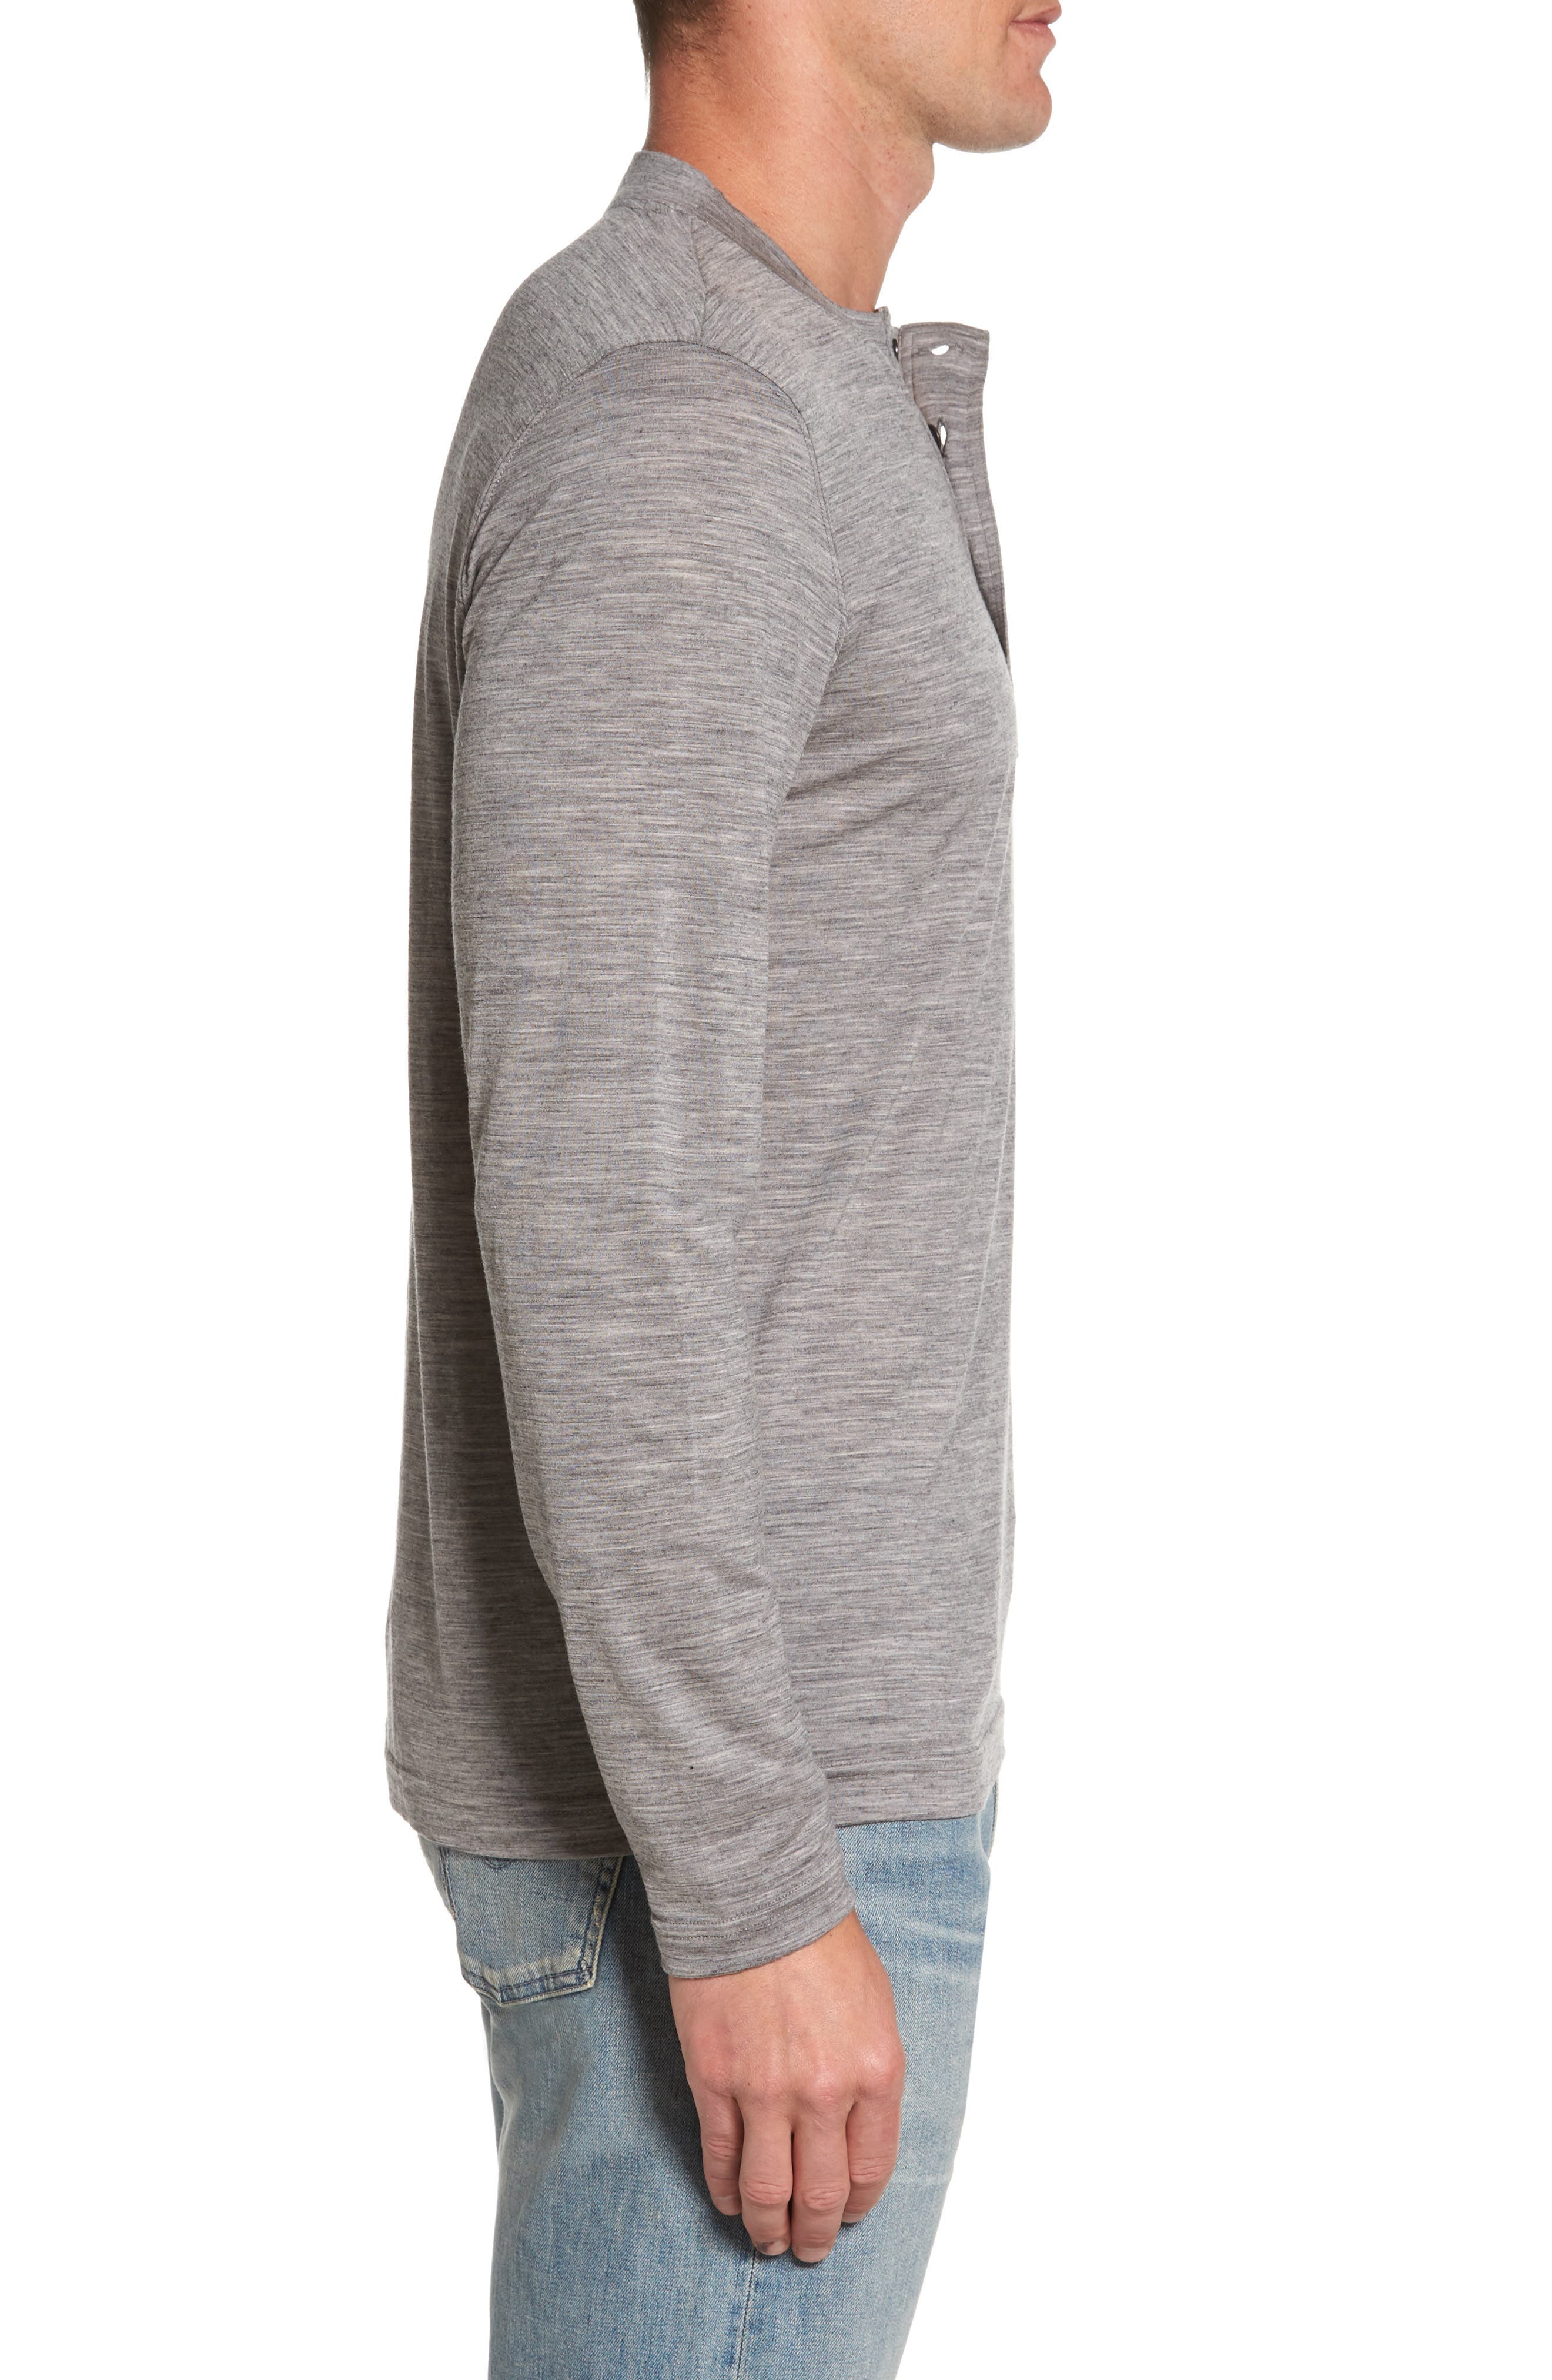 Odyssey Merino Wool Blend Henley,                             Alternate thumbnail 3, color,                             Stone Grey Heather